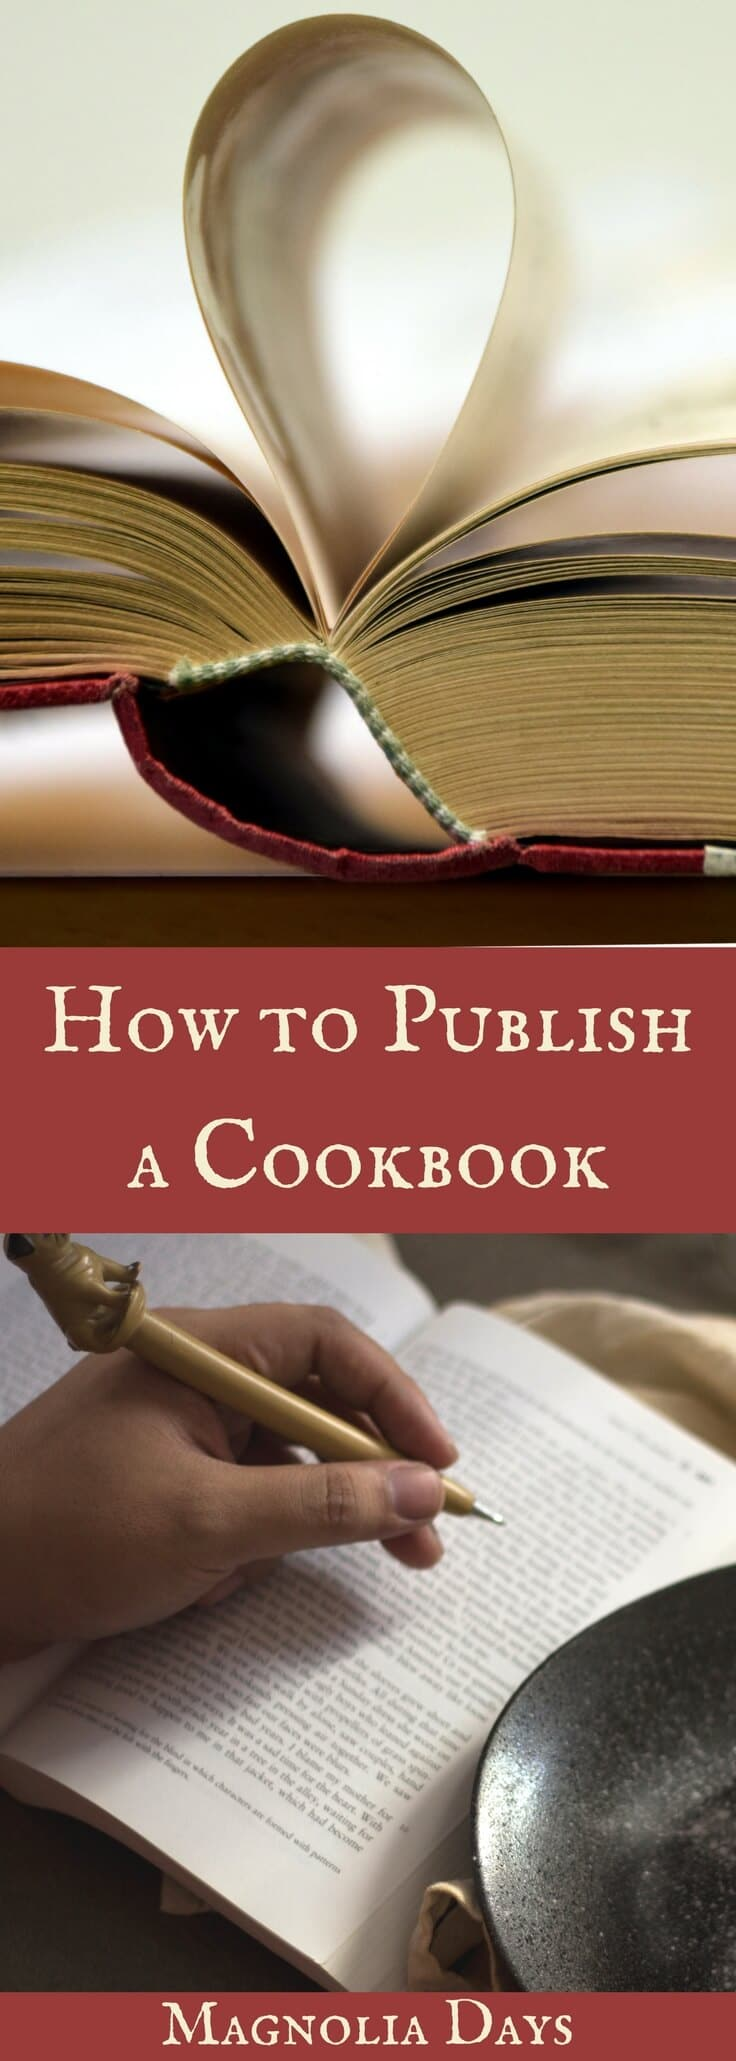 How to Publish a Cookbook is the step-by-step story of how I planned, wrote, photographed, self-published, and marketed a cookbook.  New updates every month!